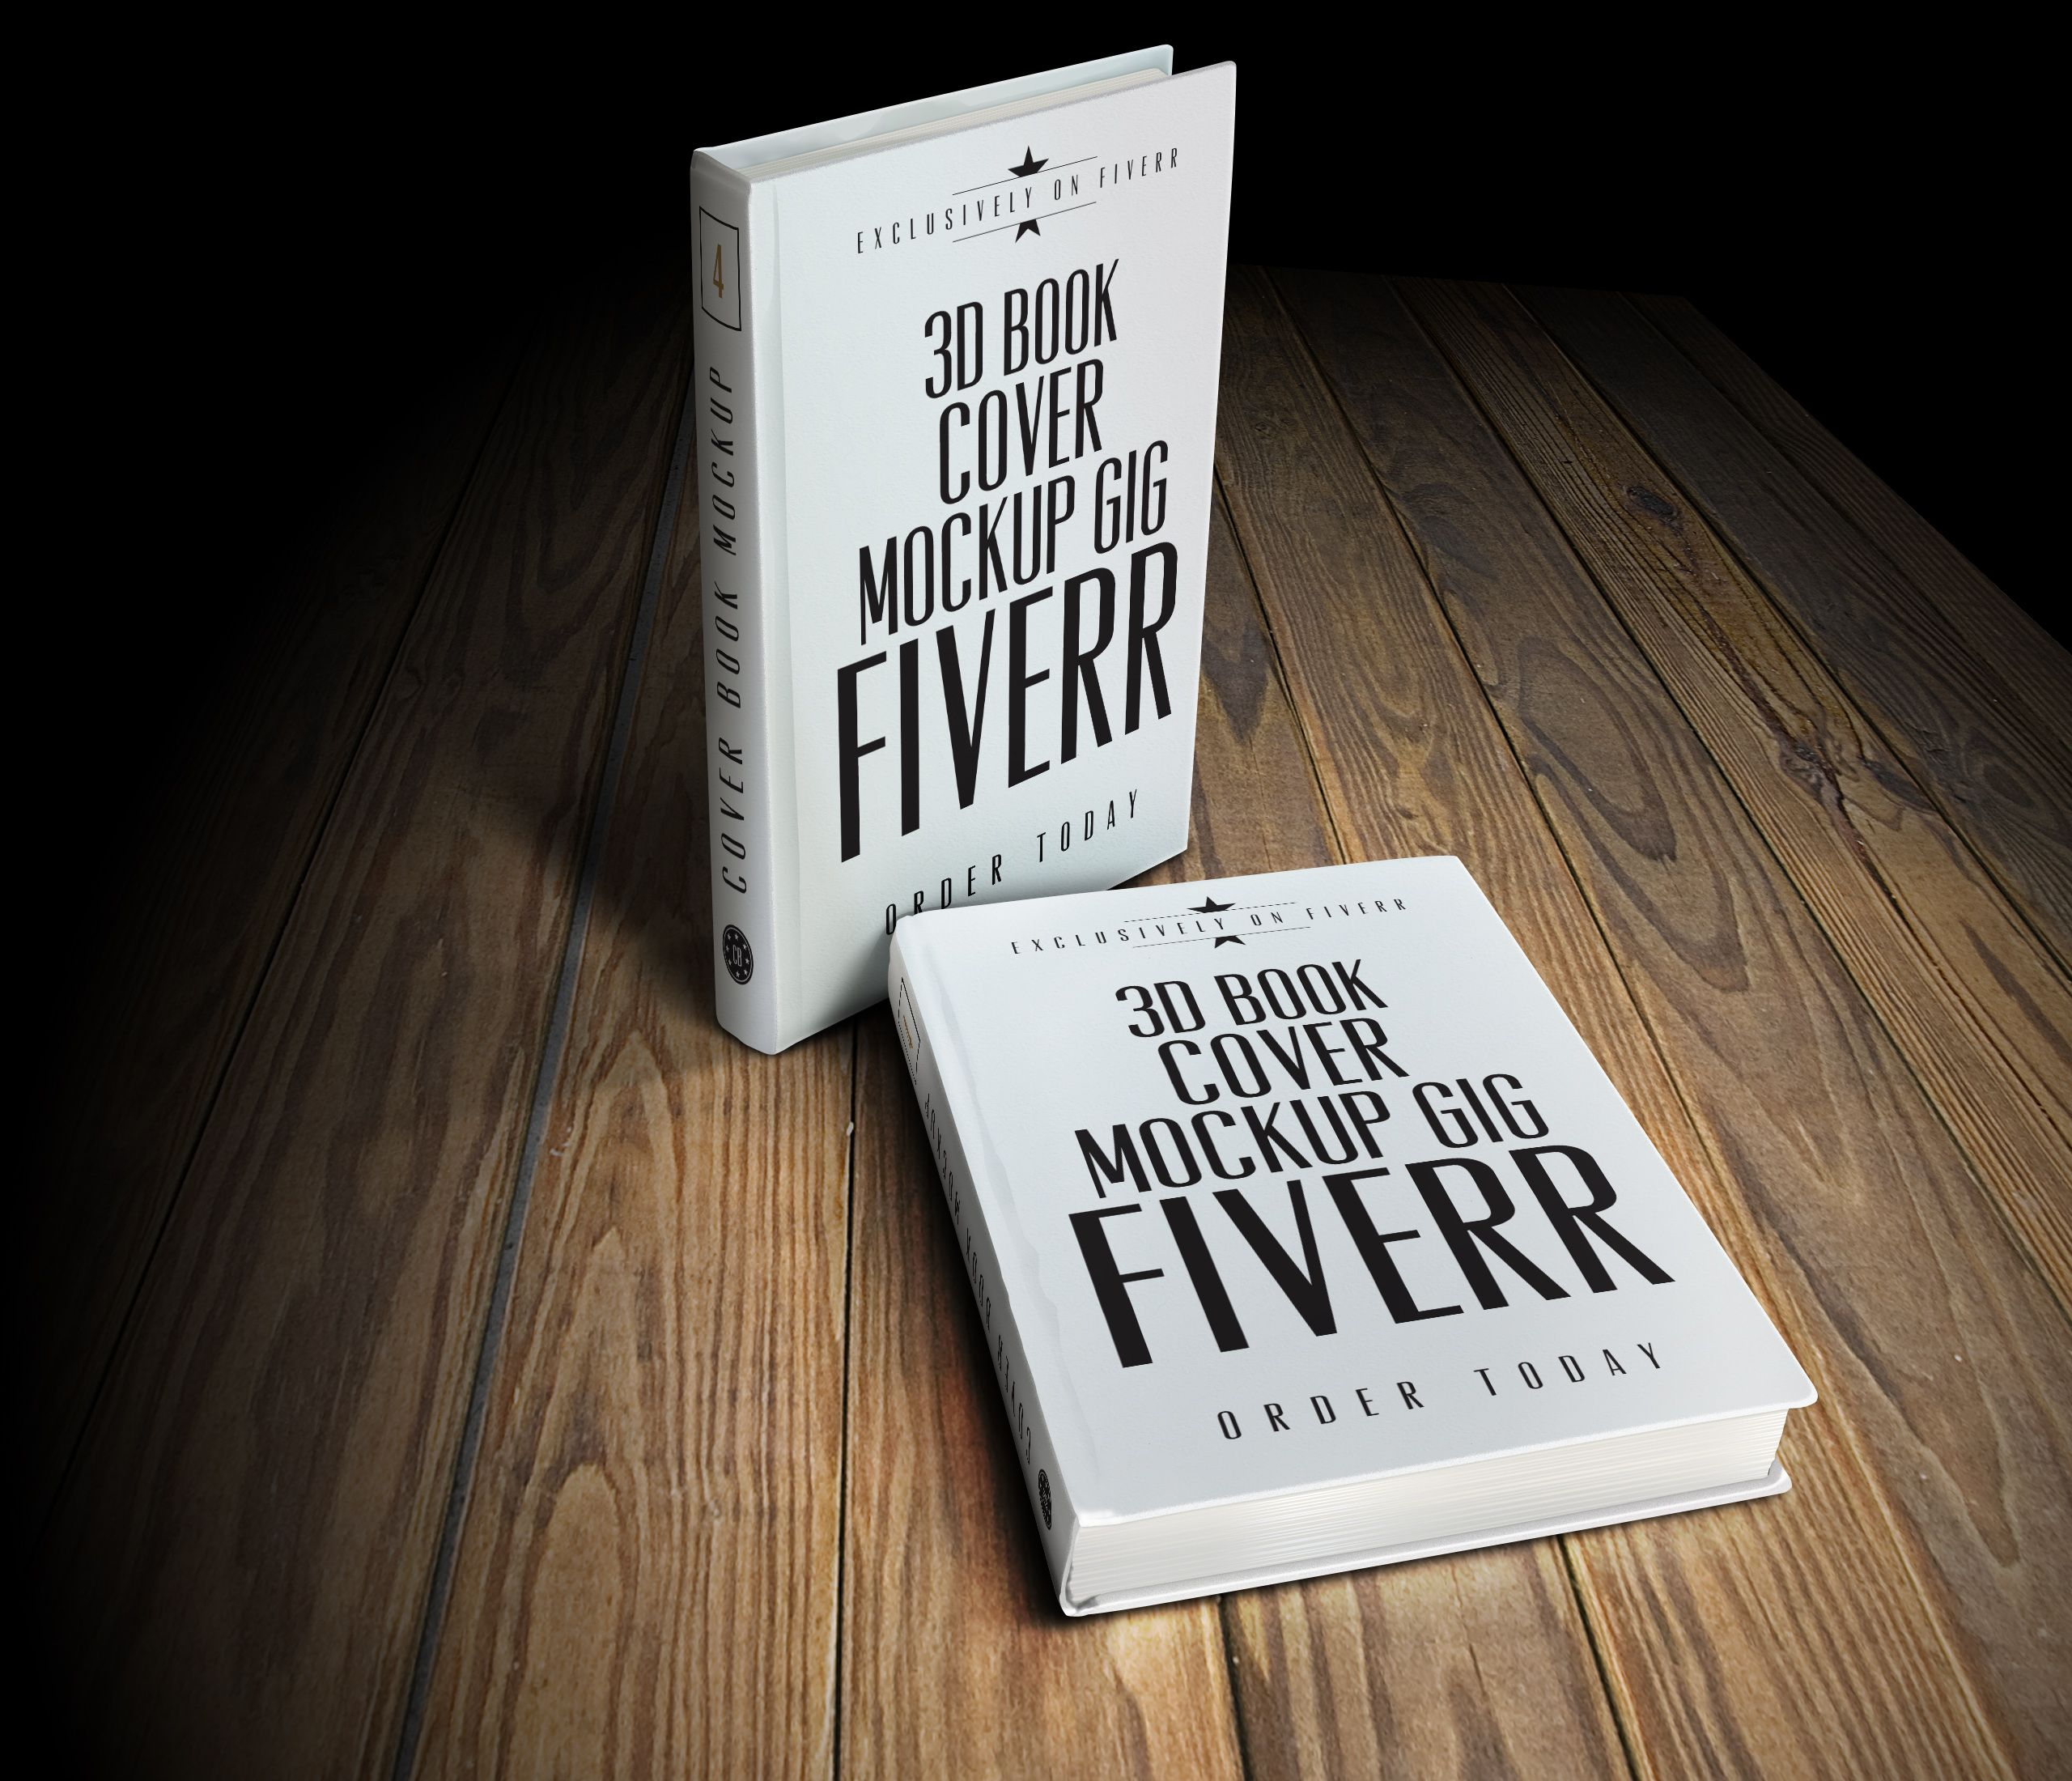 3d Book Cover Psd Template Gallery - Template Design Ideas